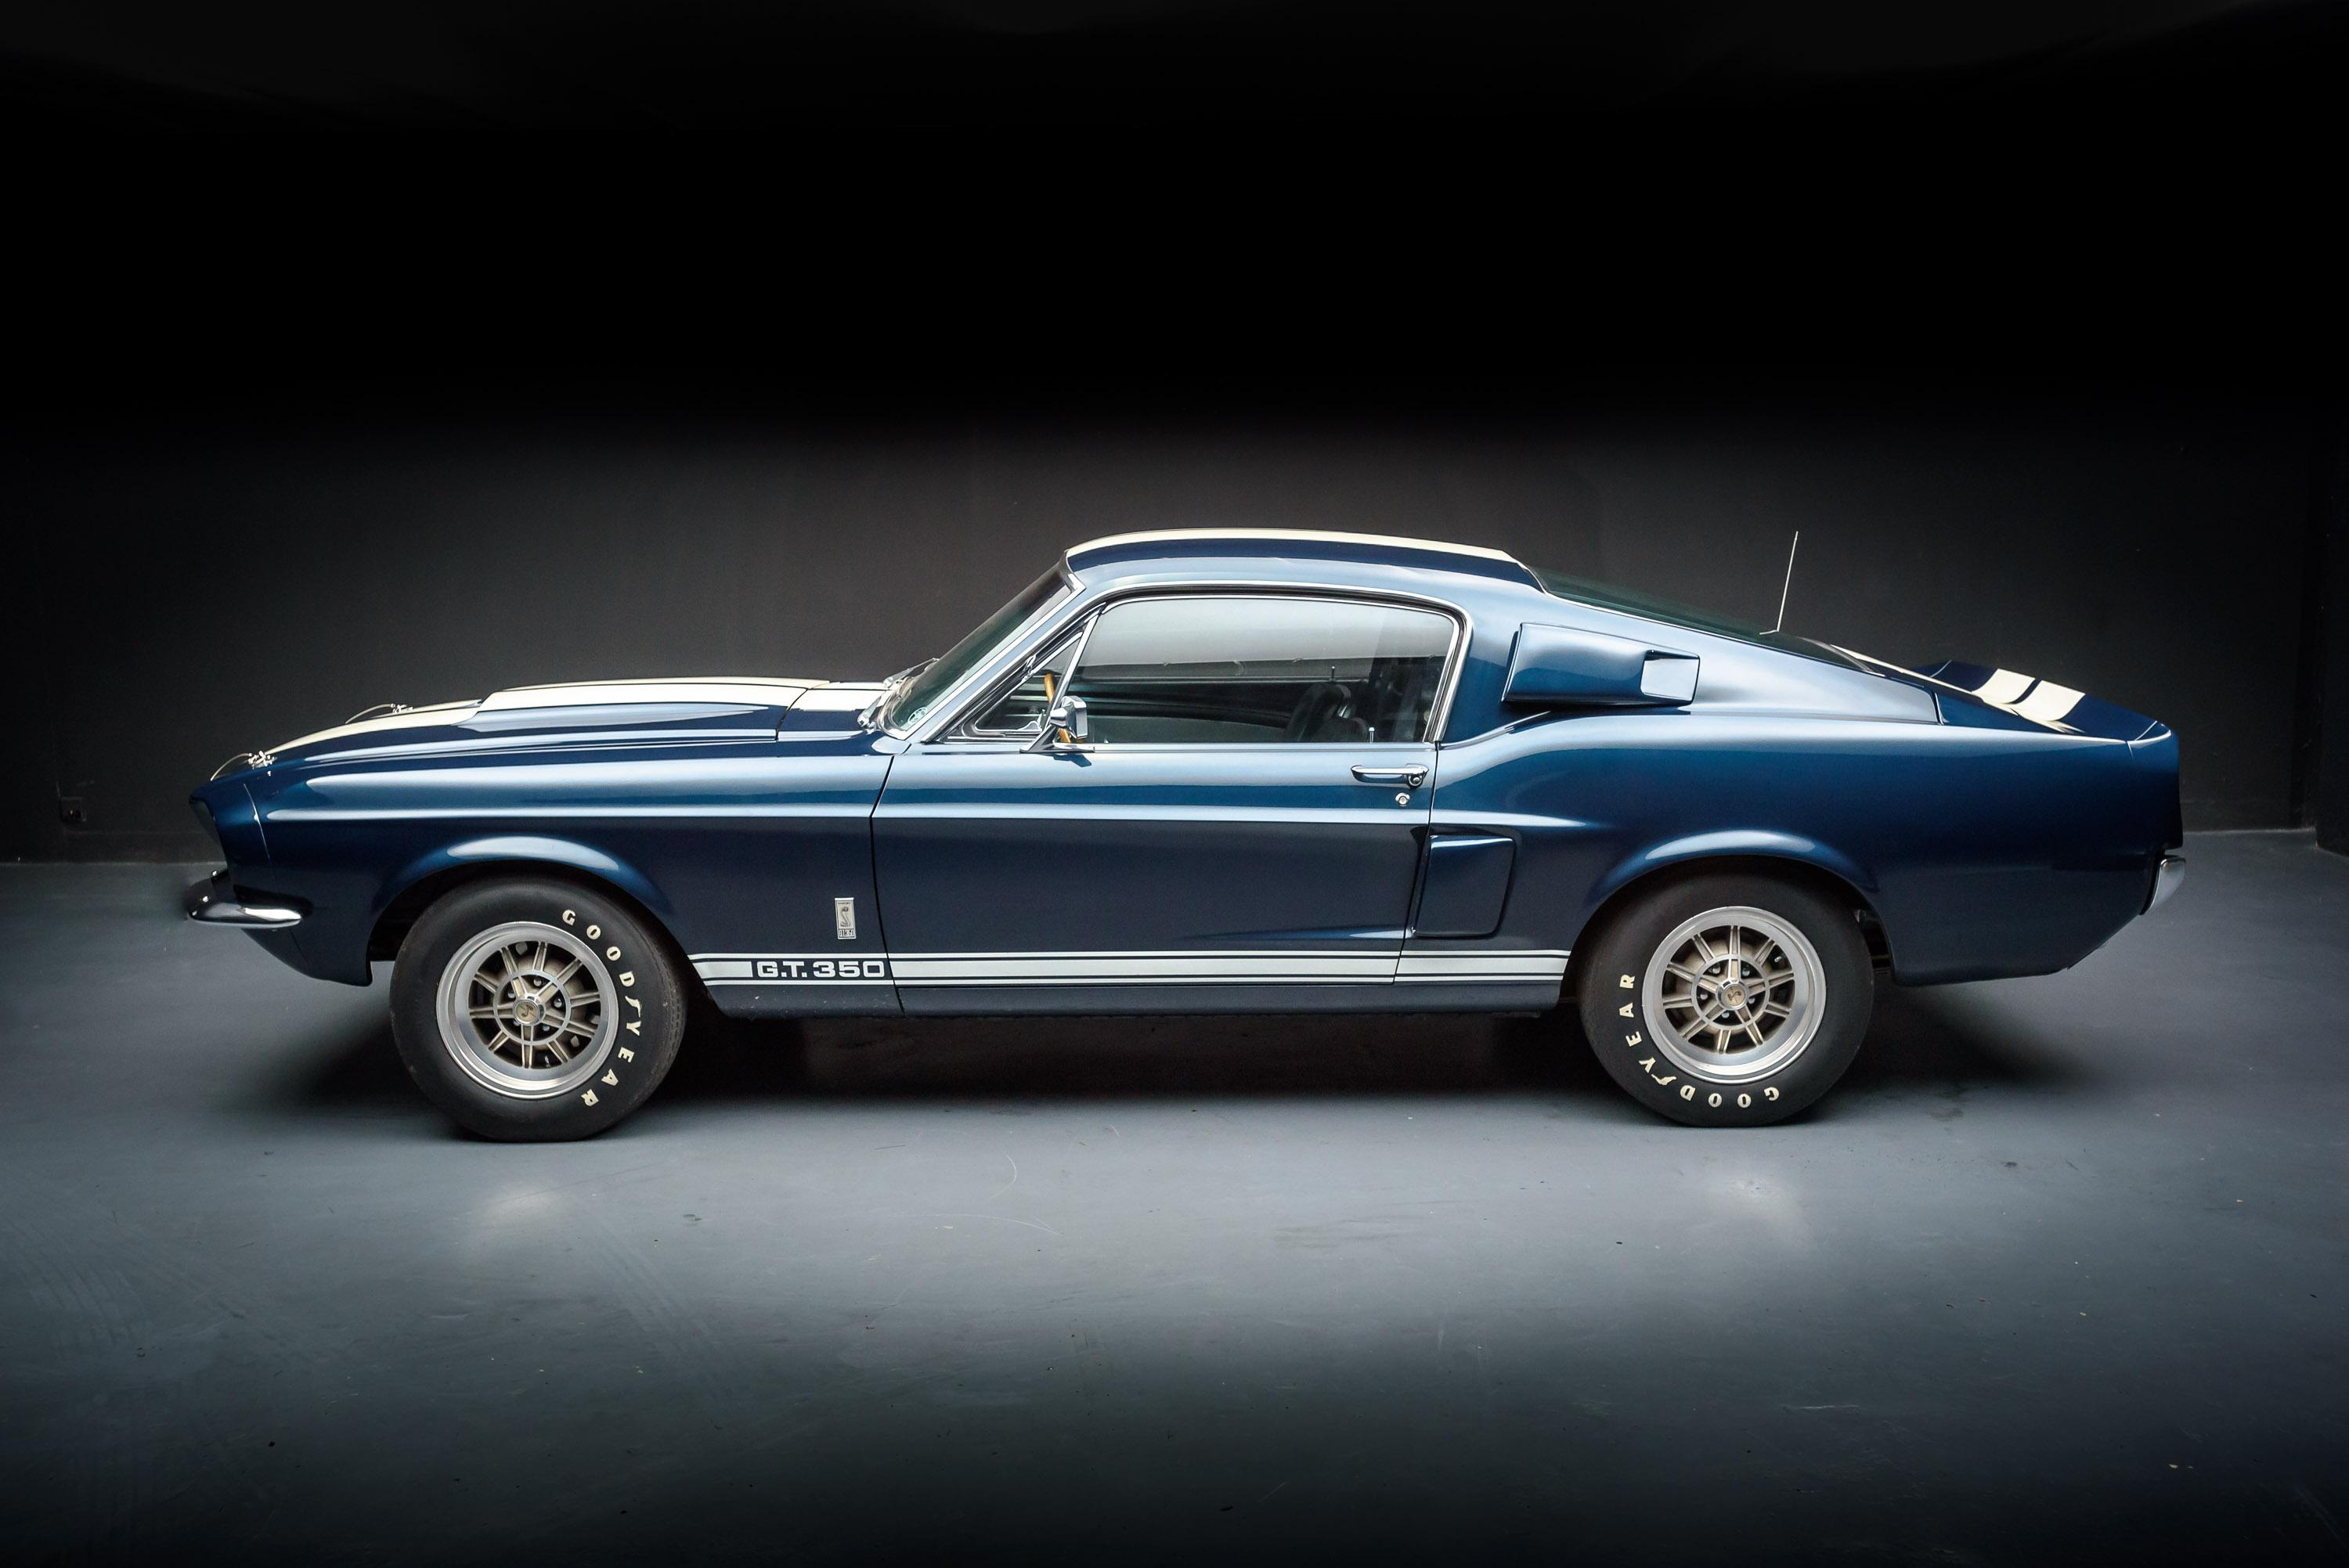 1967 Shelby GT350 HD Wallpaper | Background Image